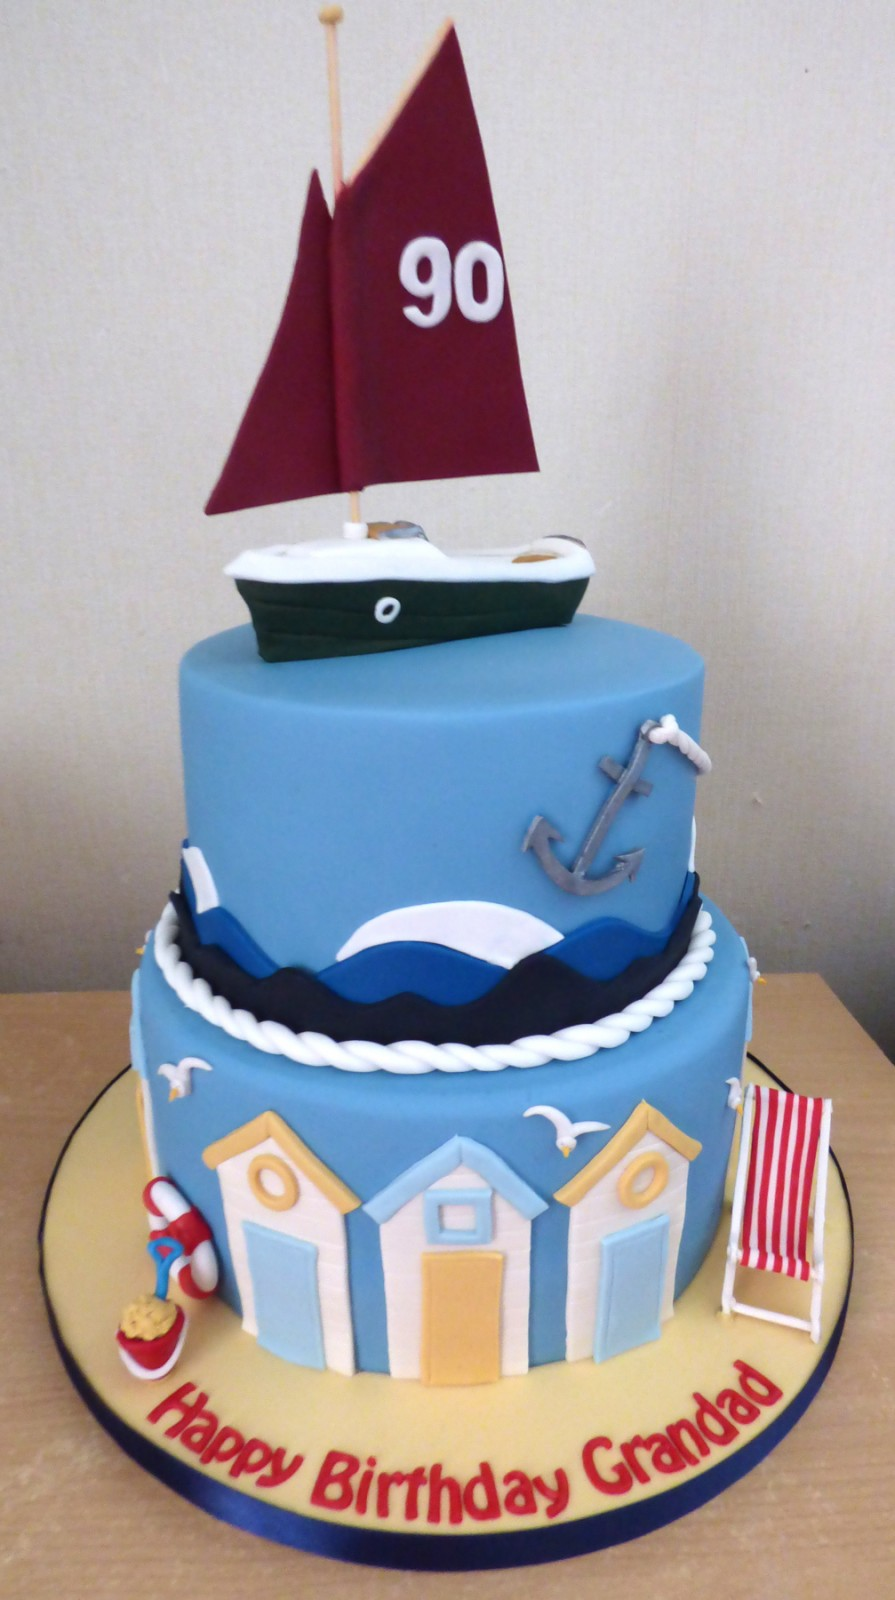 2 Tier Cornish Crabber Beach Birthday Cake